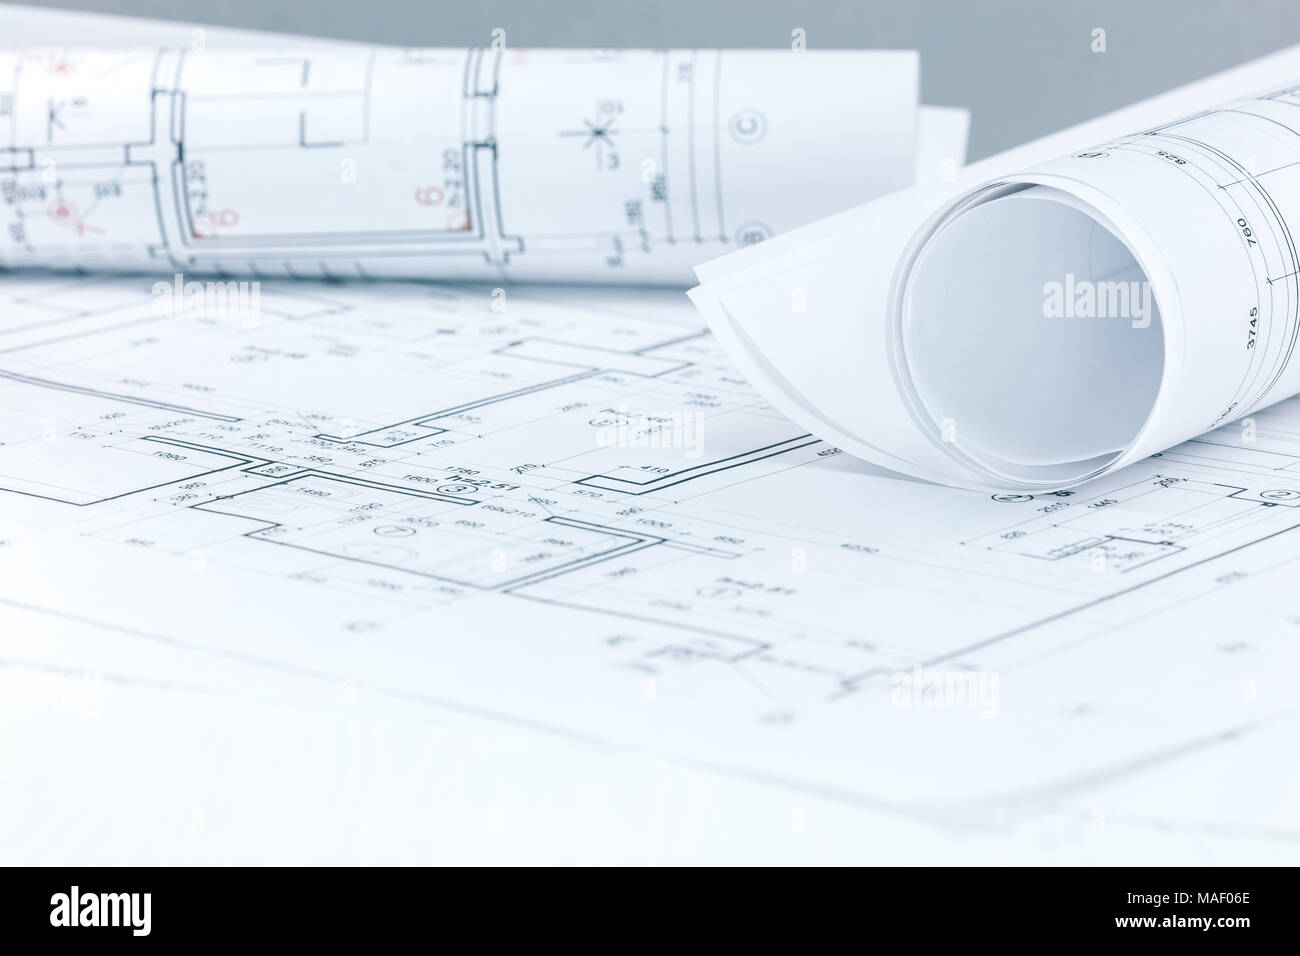 architectural and engineering project plans and blueprint rolls on